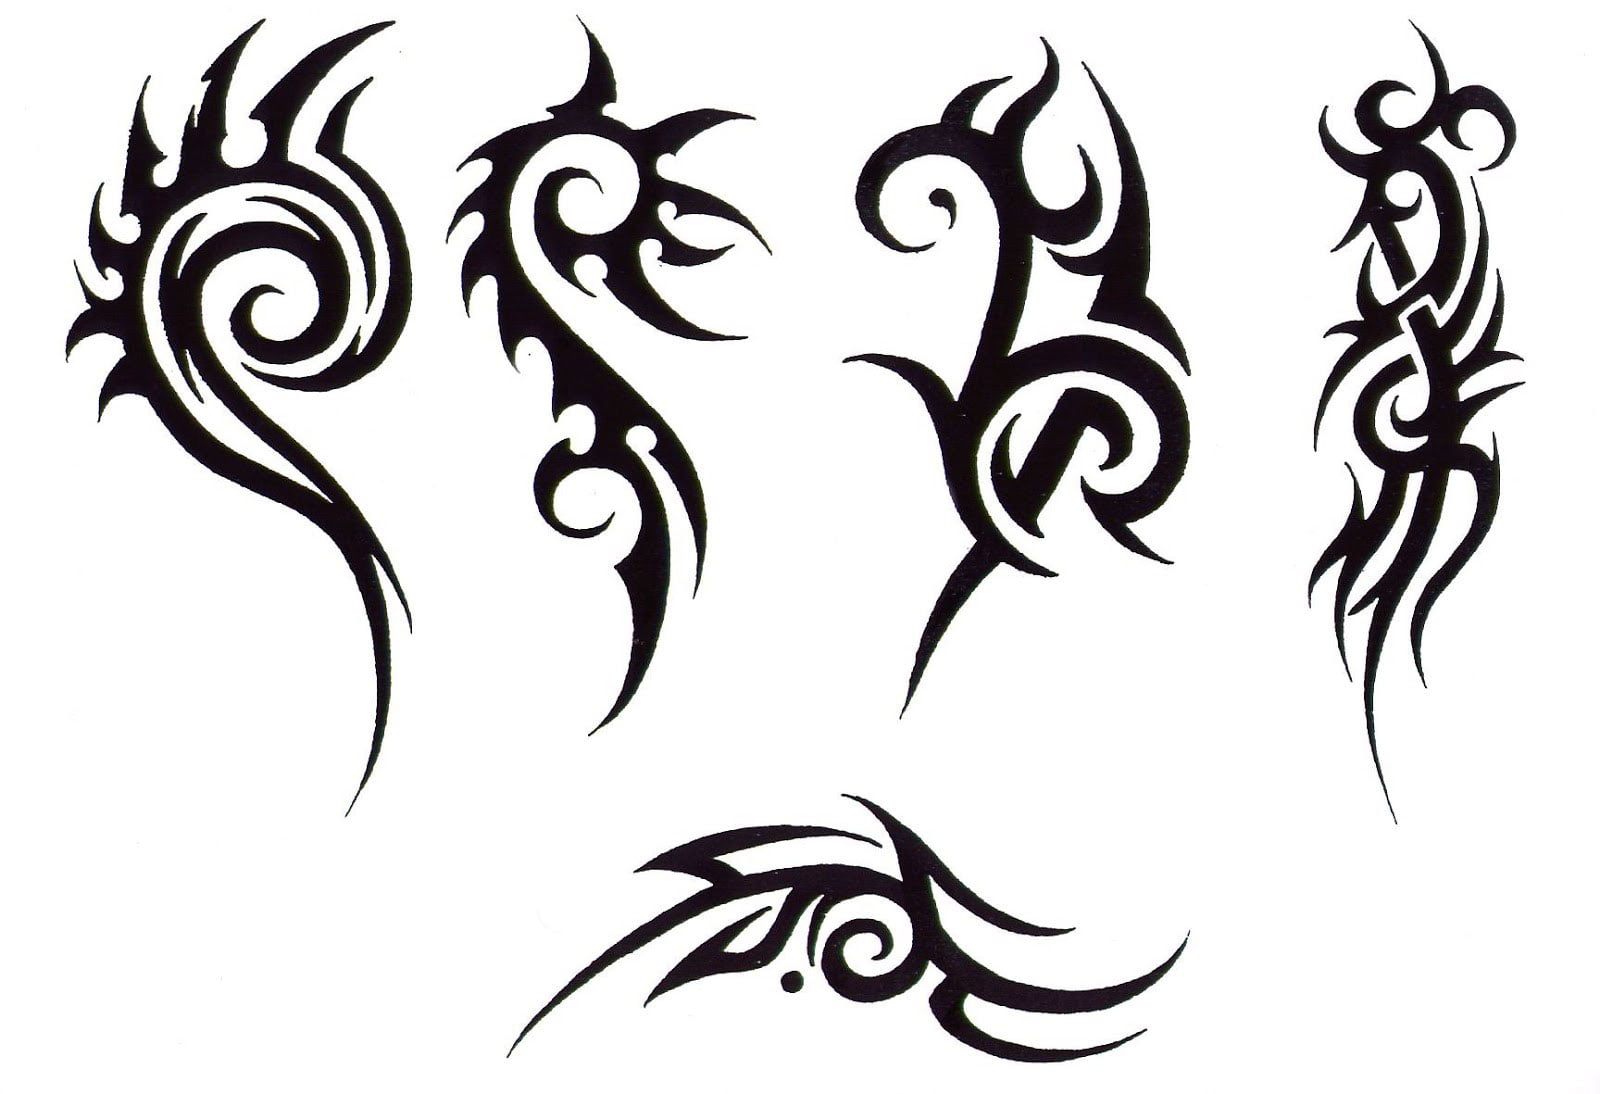 Tribal design tattoos for women cool tattoos bonbaden for Women s tribal tattoos designs